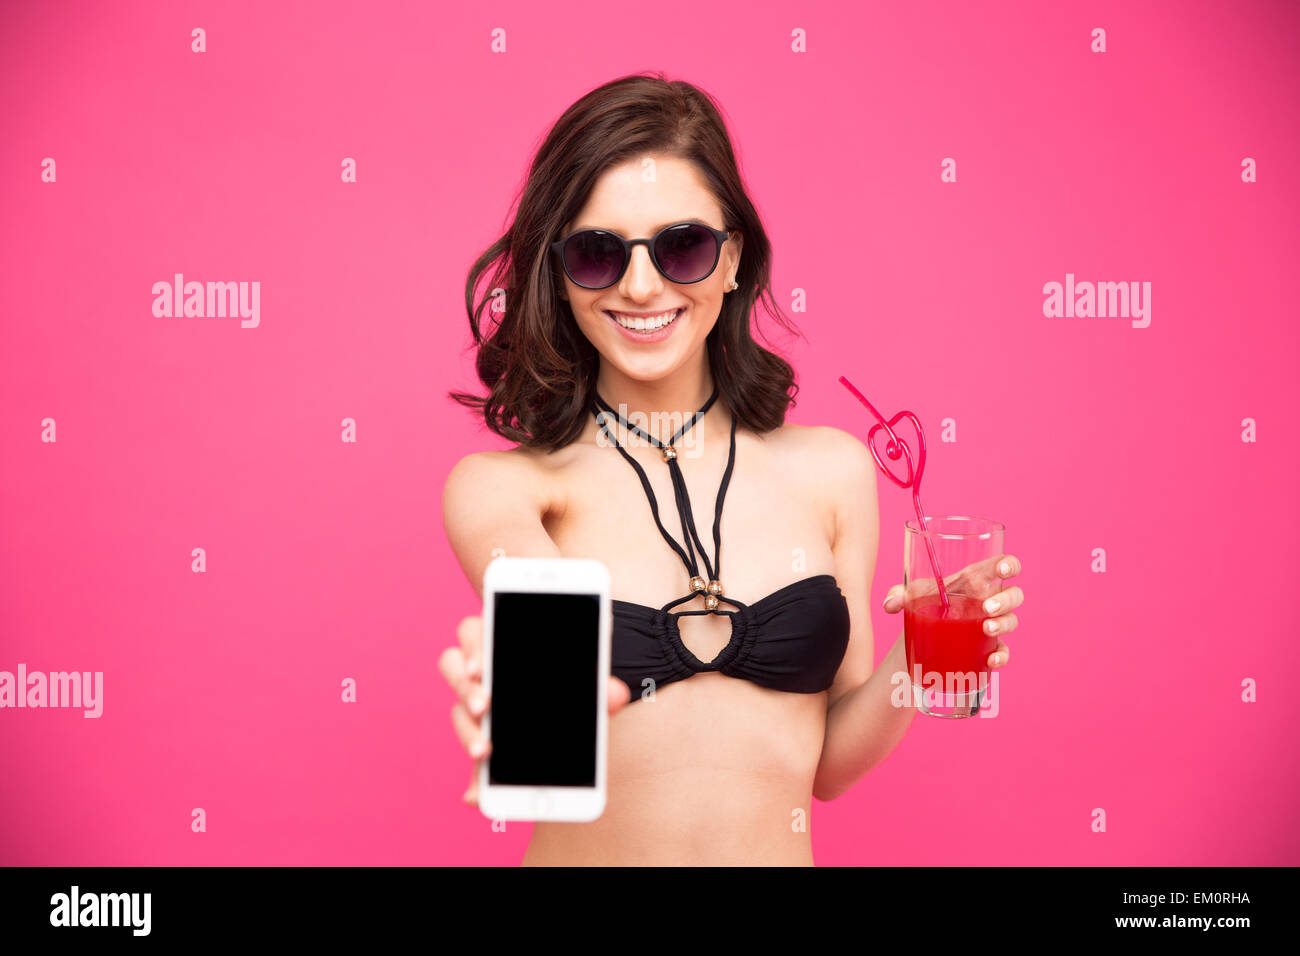 Smiling woman in bikini and glasses holding glass of juice and showing smartphone screen over pink background - Stock Image